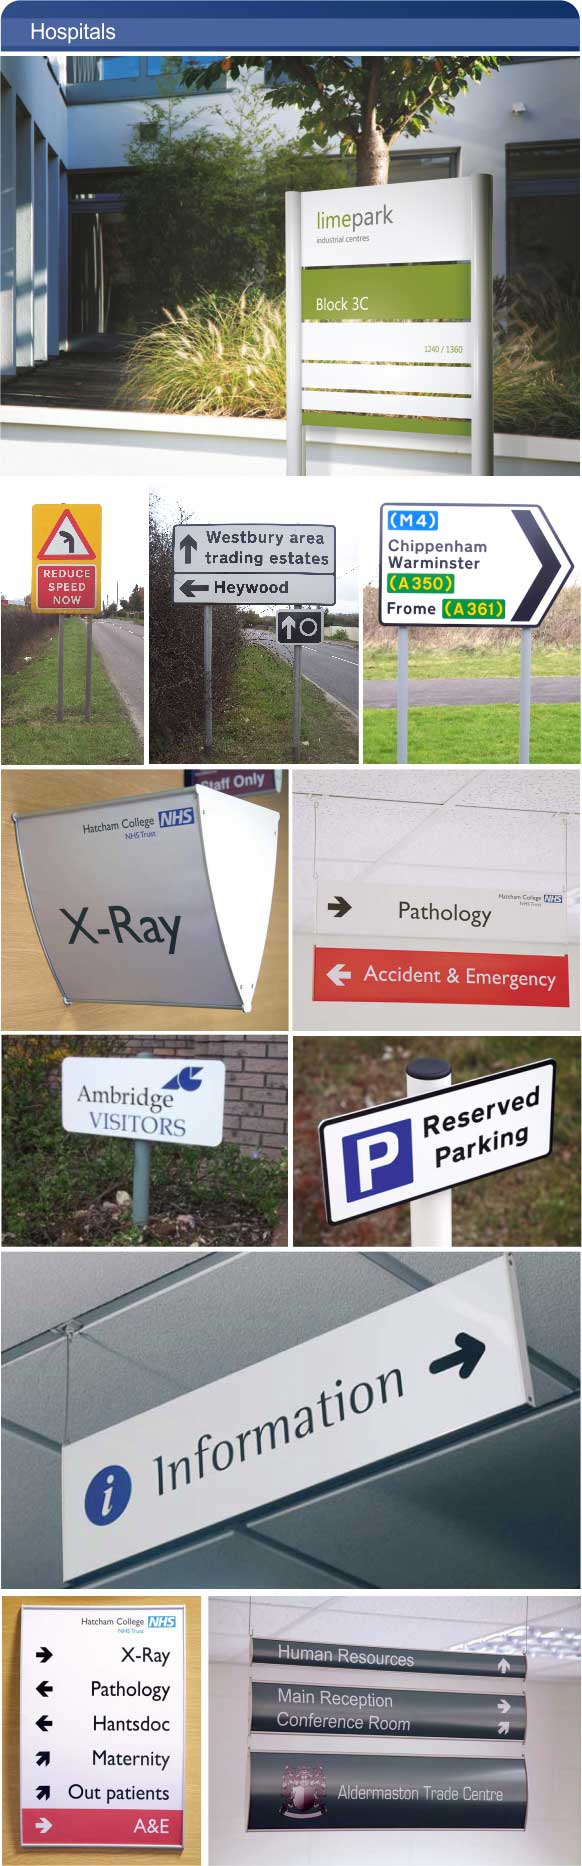 Hospital Signs